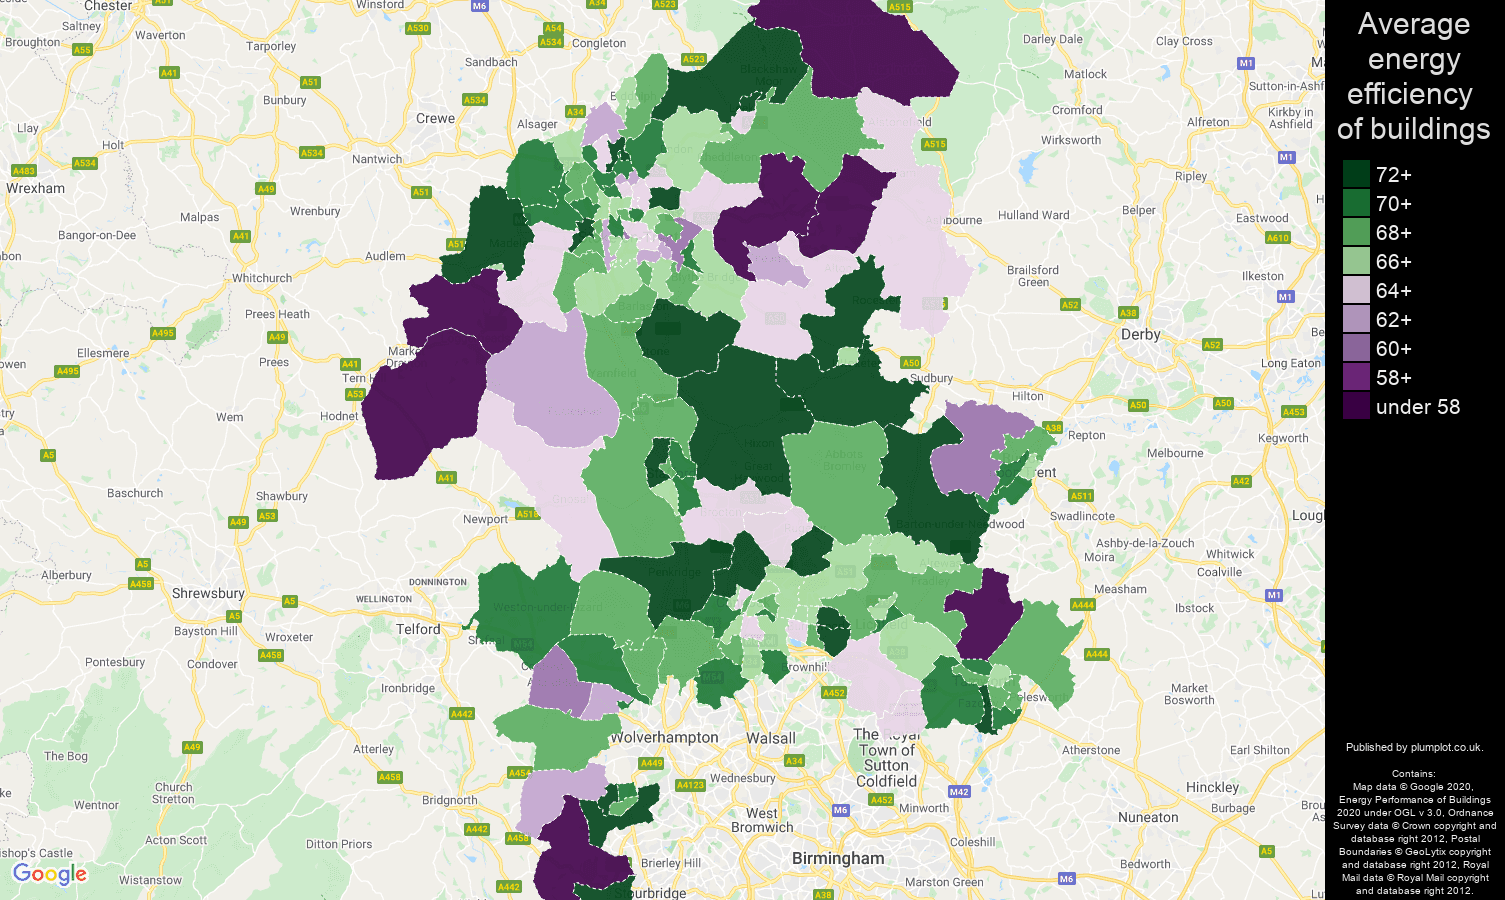 Staffordshire map of energy efficiency of flats